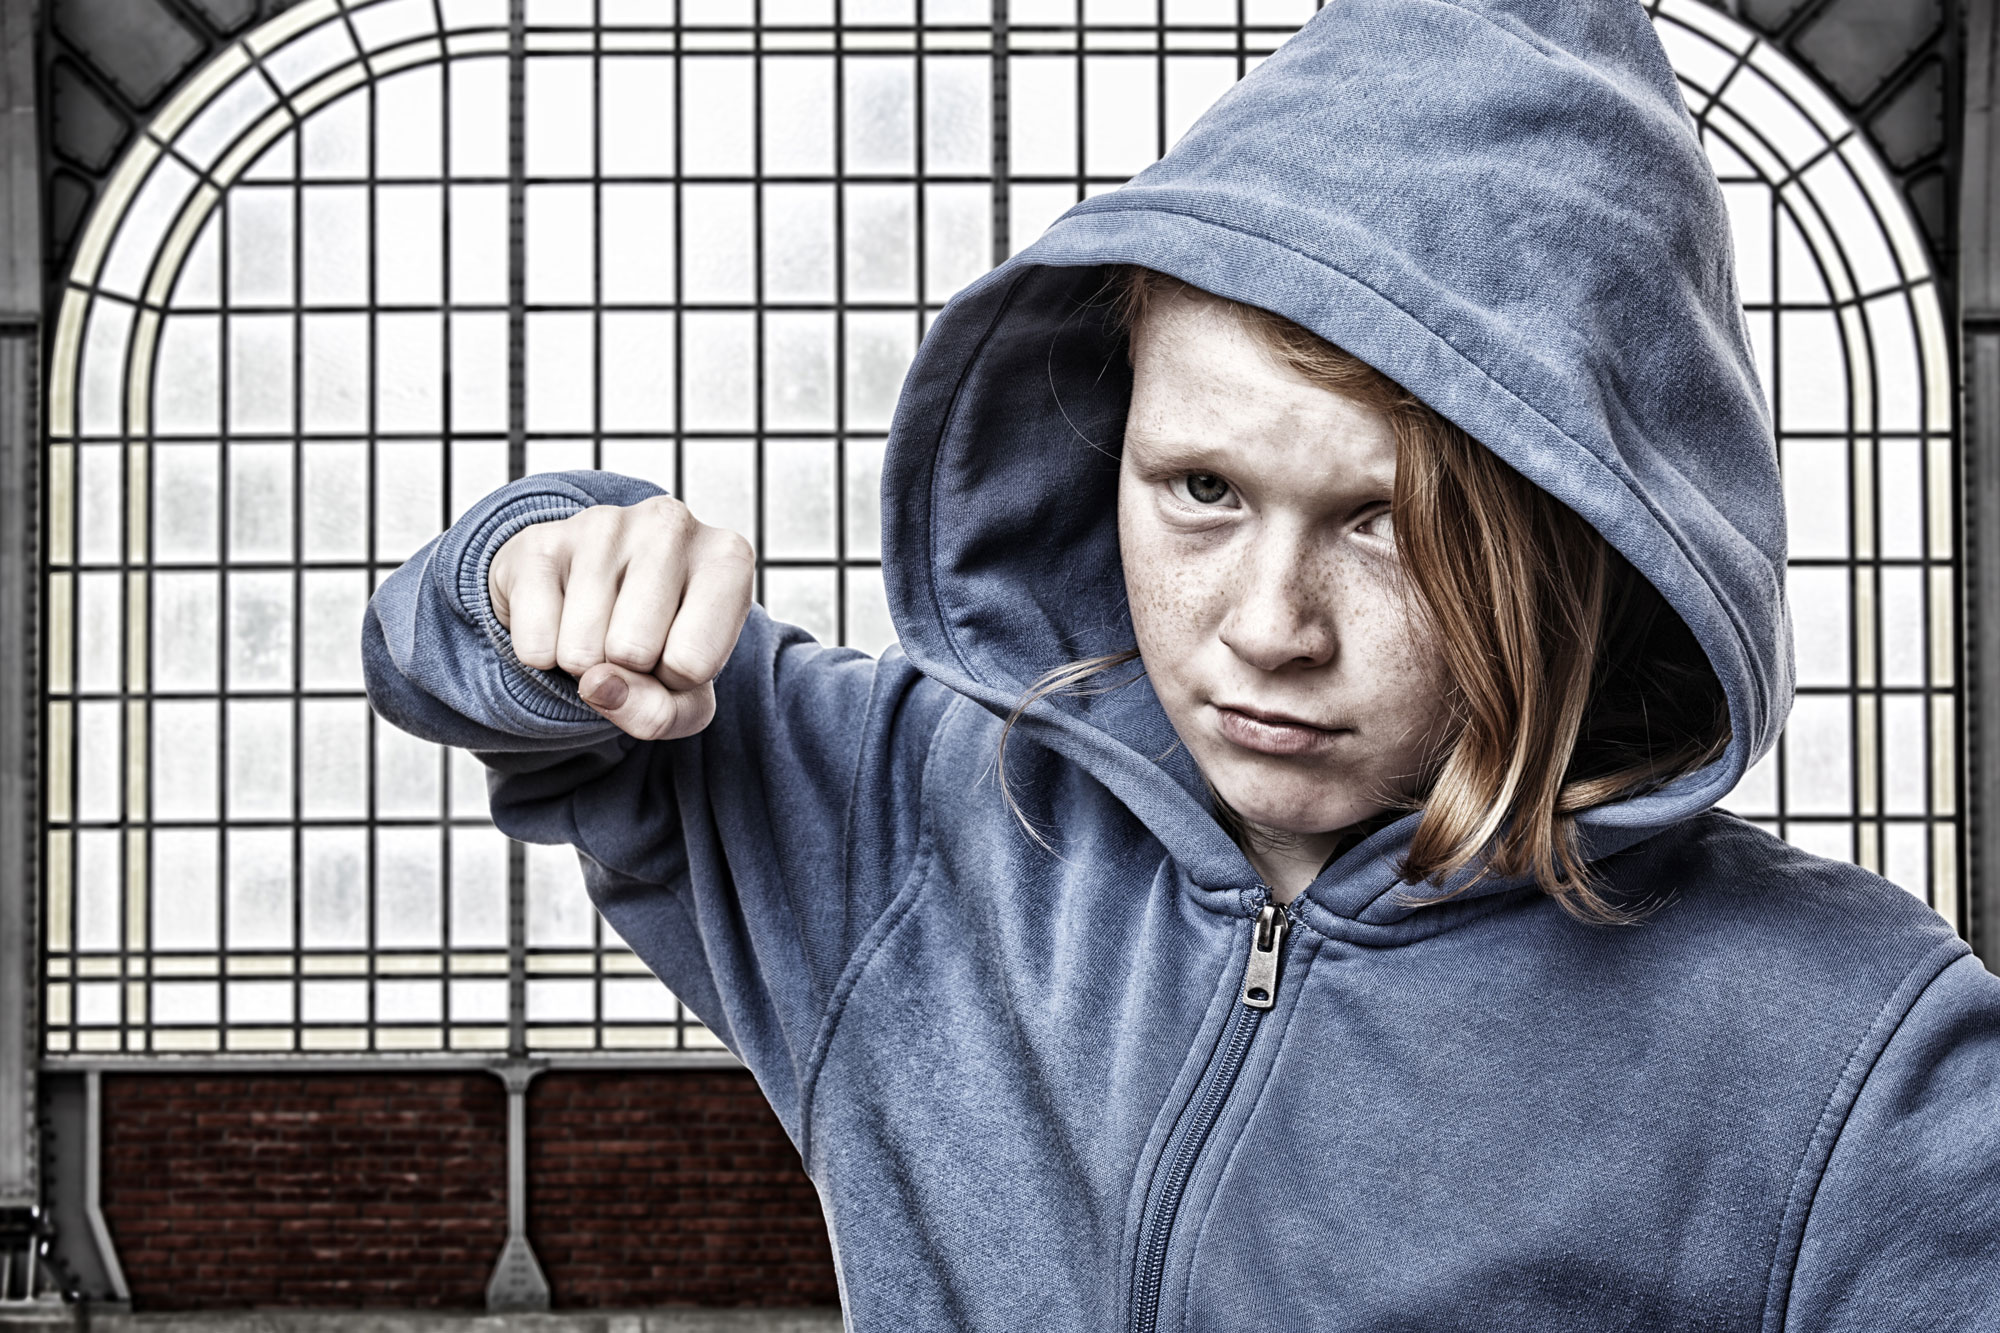 Helping parents handle aggression